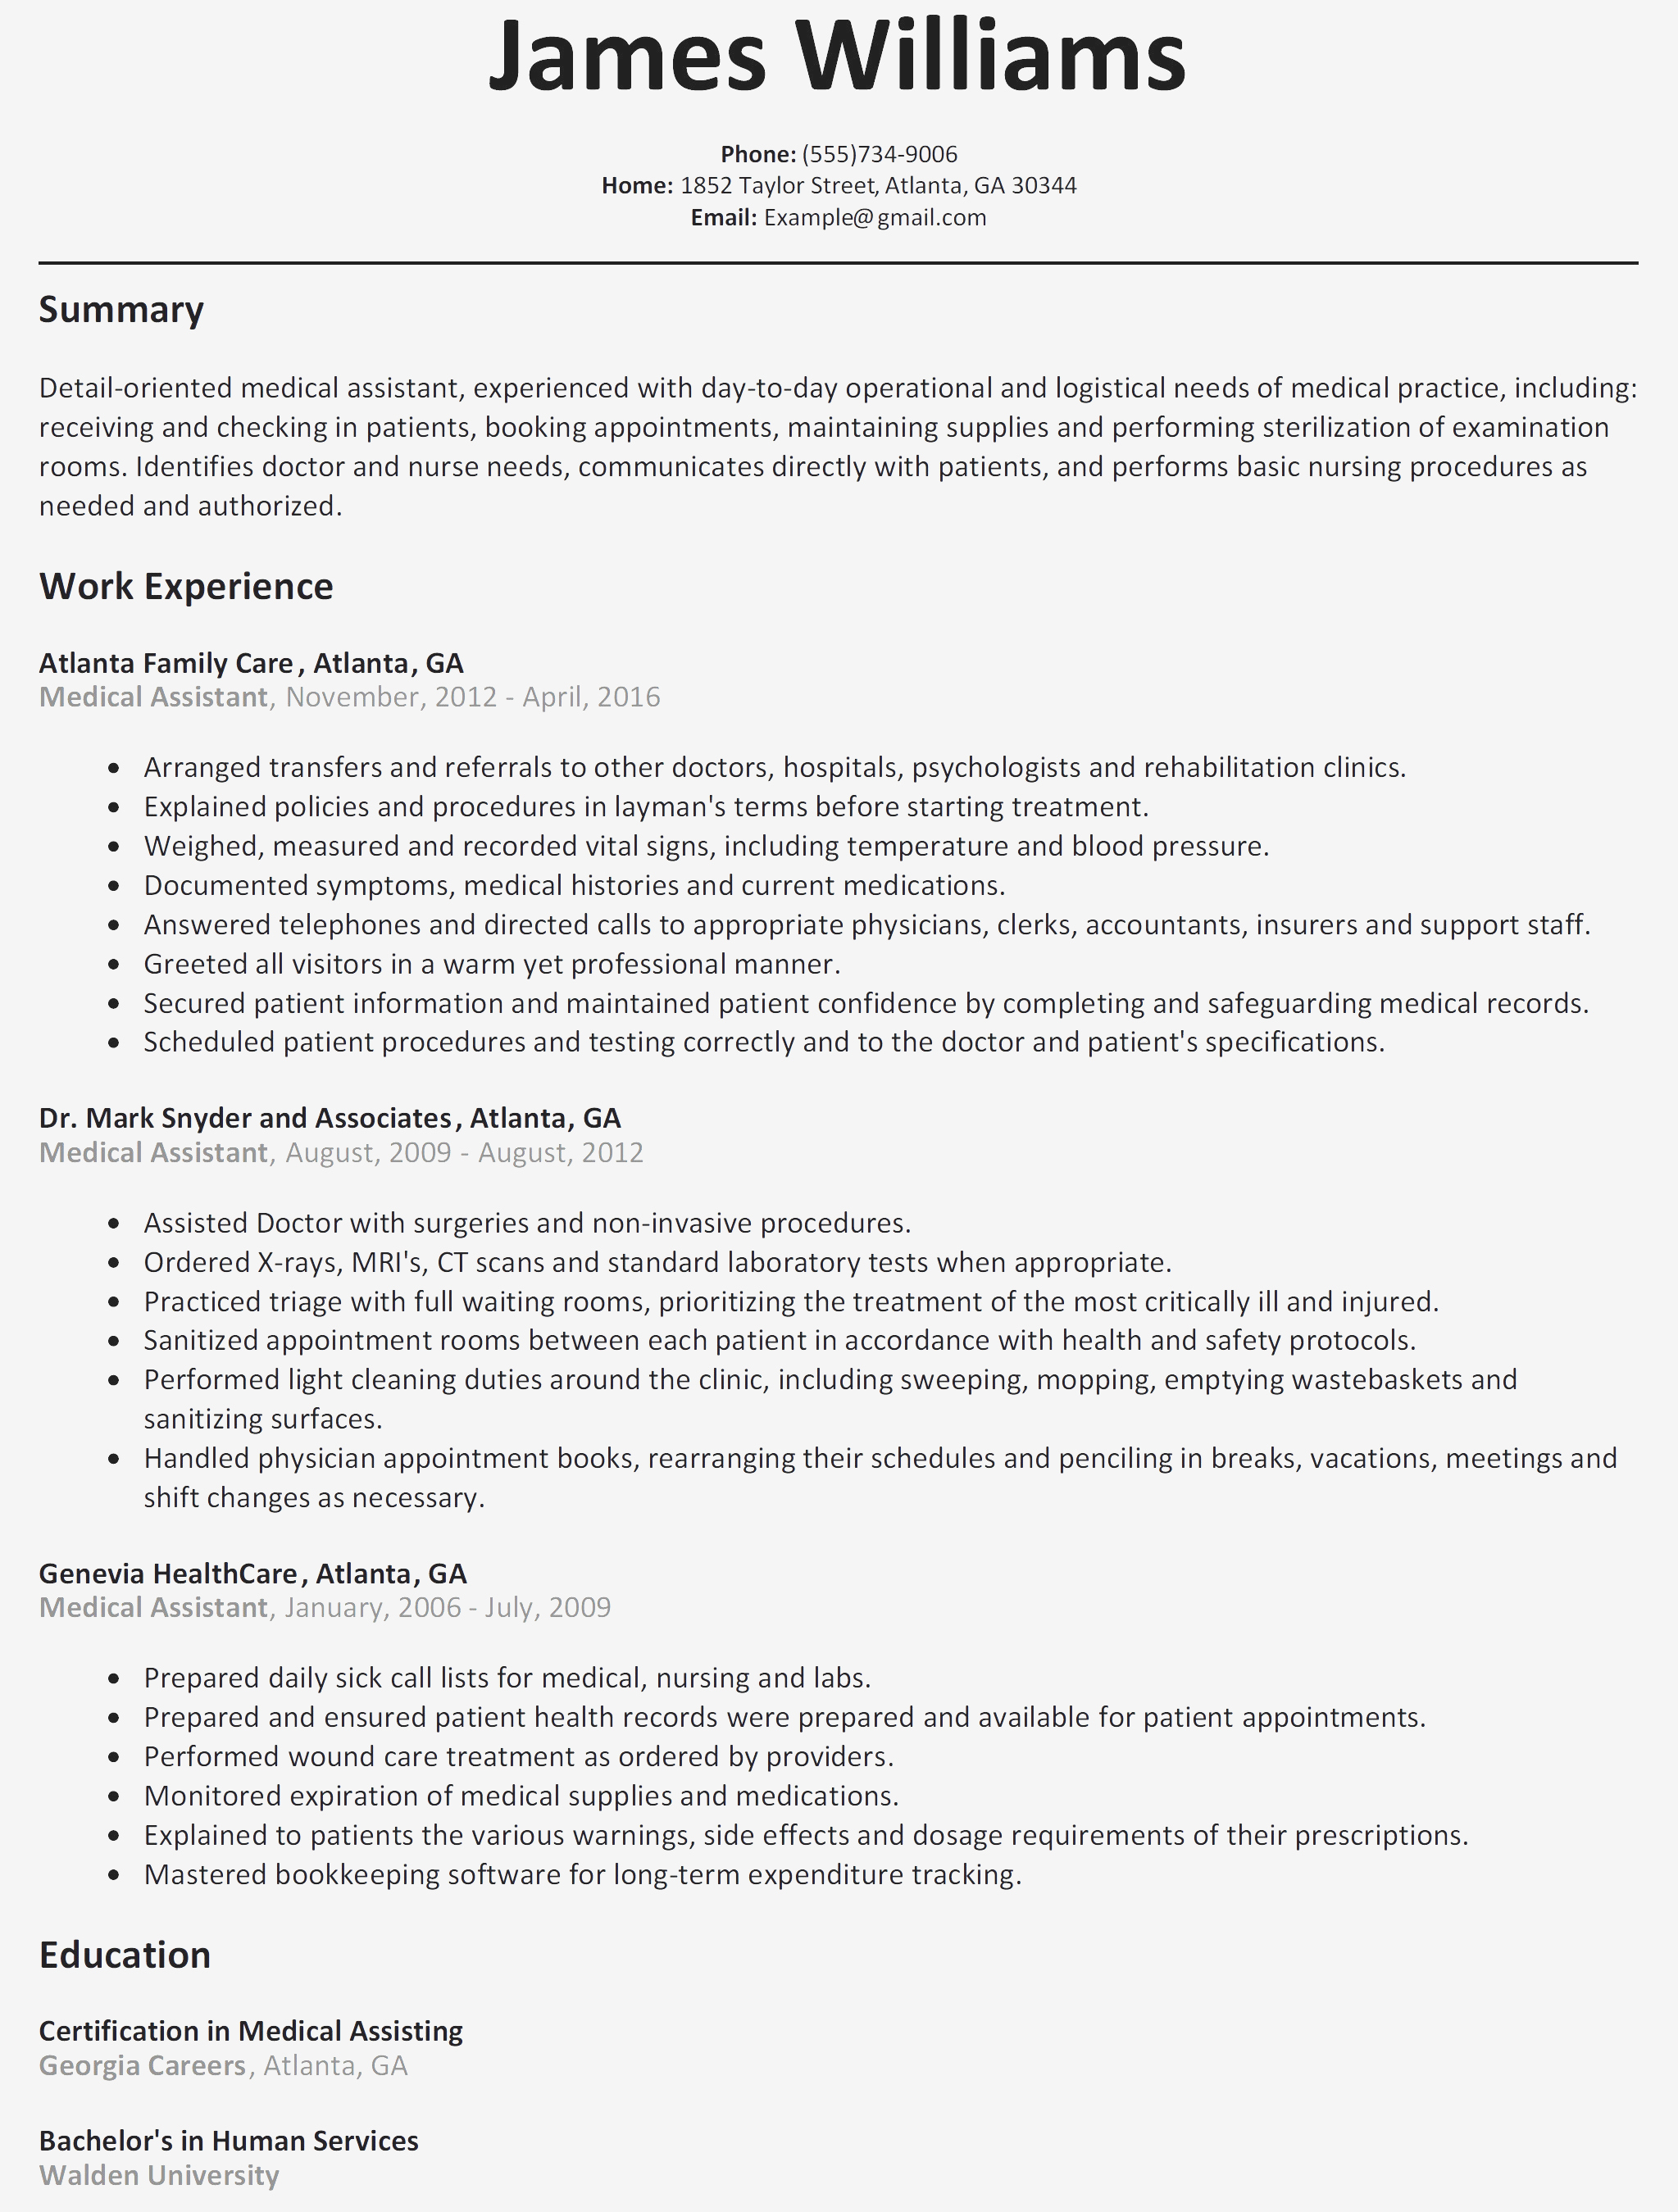 medical assistant summary resume Collection-Resume 7-h